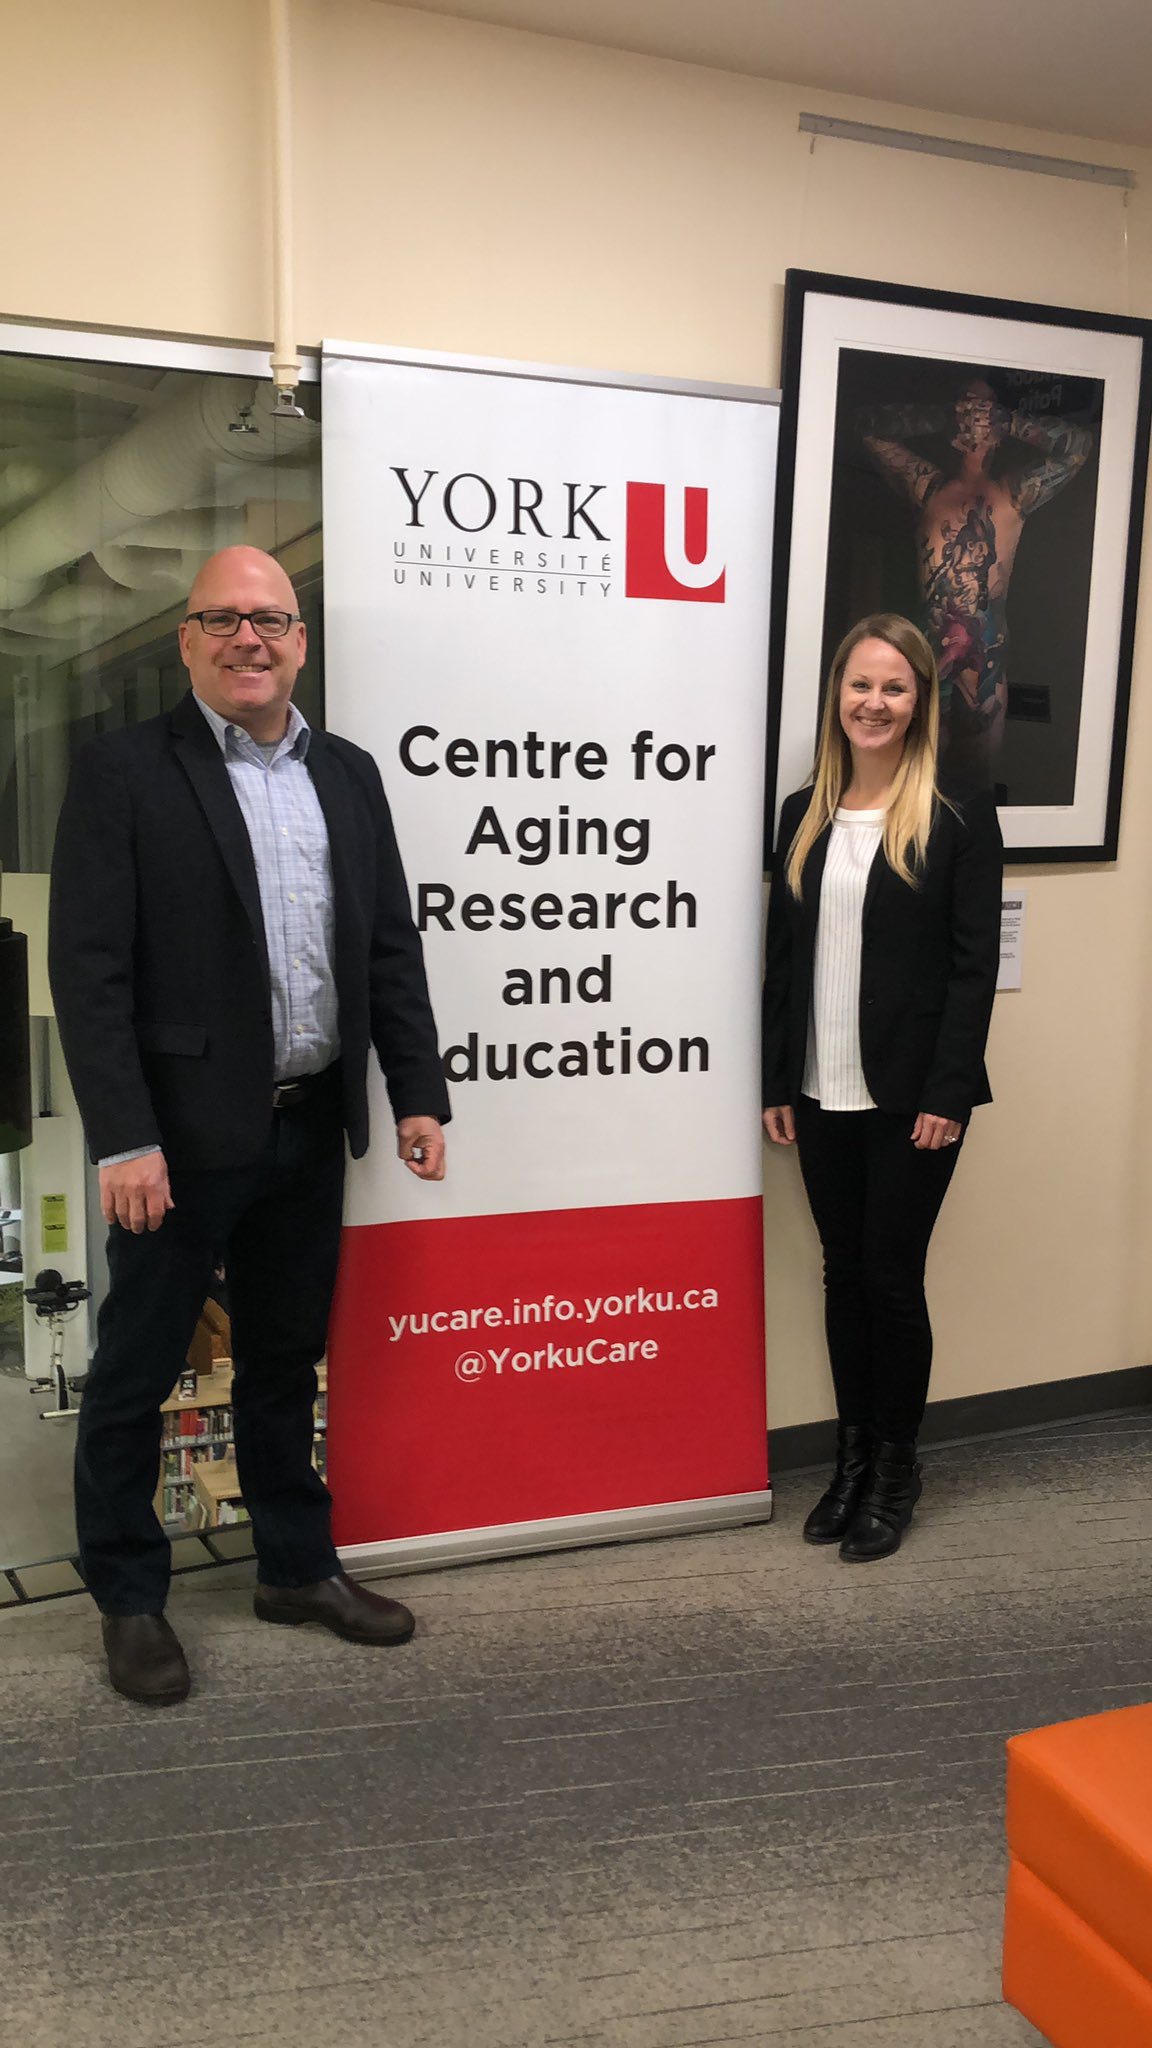 photo of Dr. Joe Baker and Dr. Jaclyn Hurley